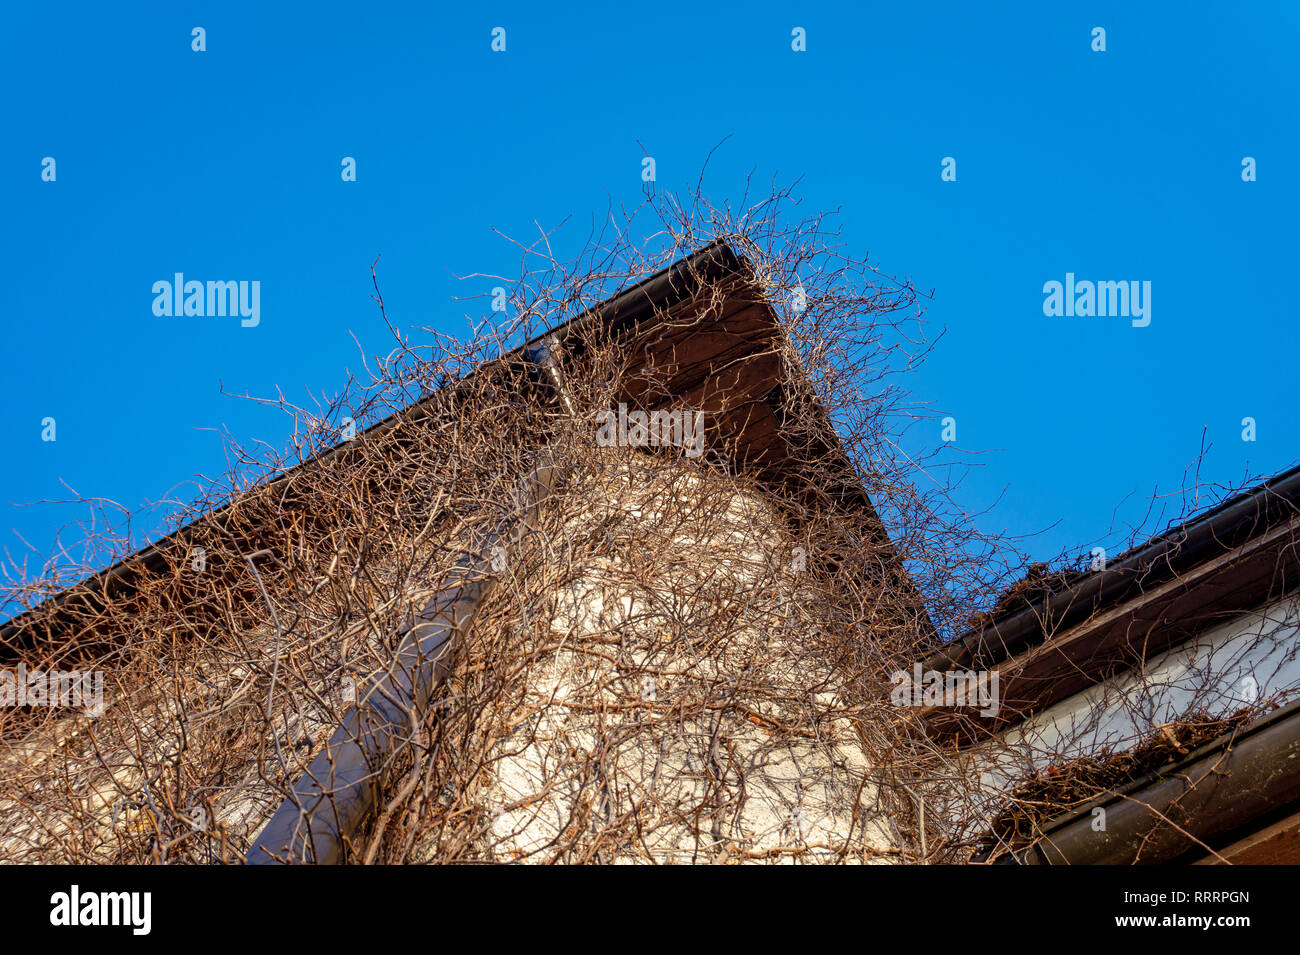 Deciduous creeper with bare leafless vines on a house exterior in winter in a concept of the seasons - Stock Image